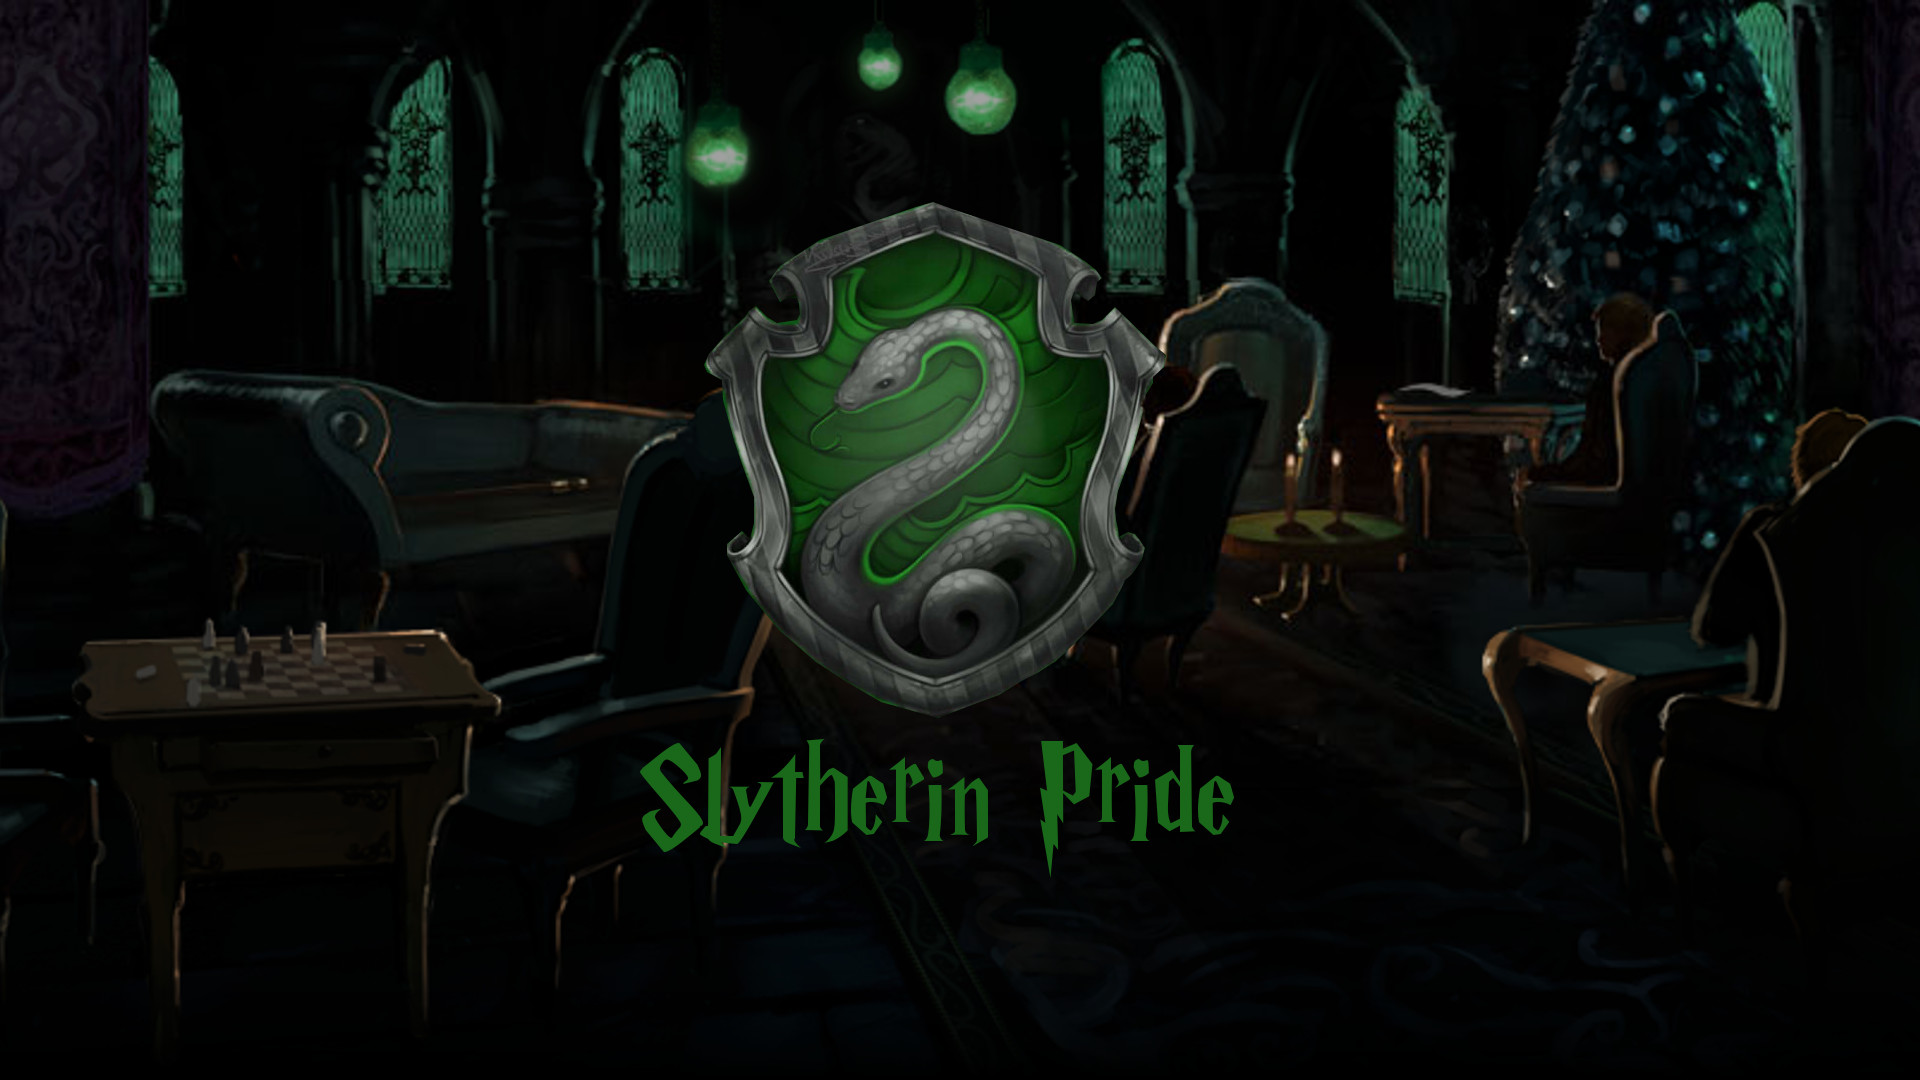 Slytherin Crest Wallpaper (65+ images)